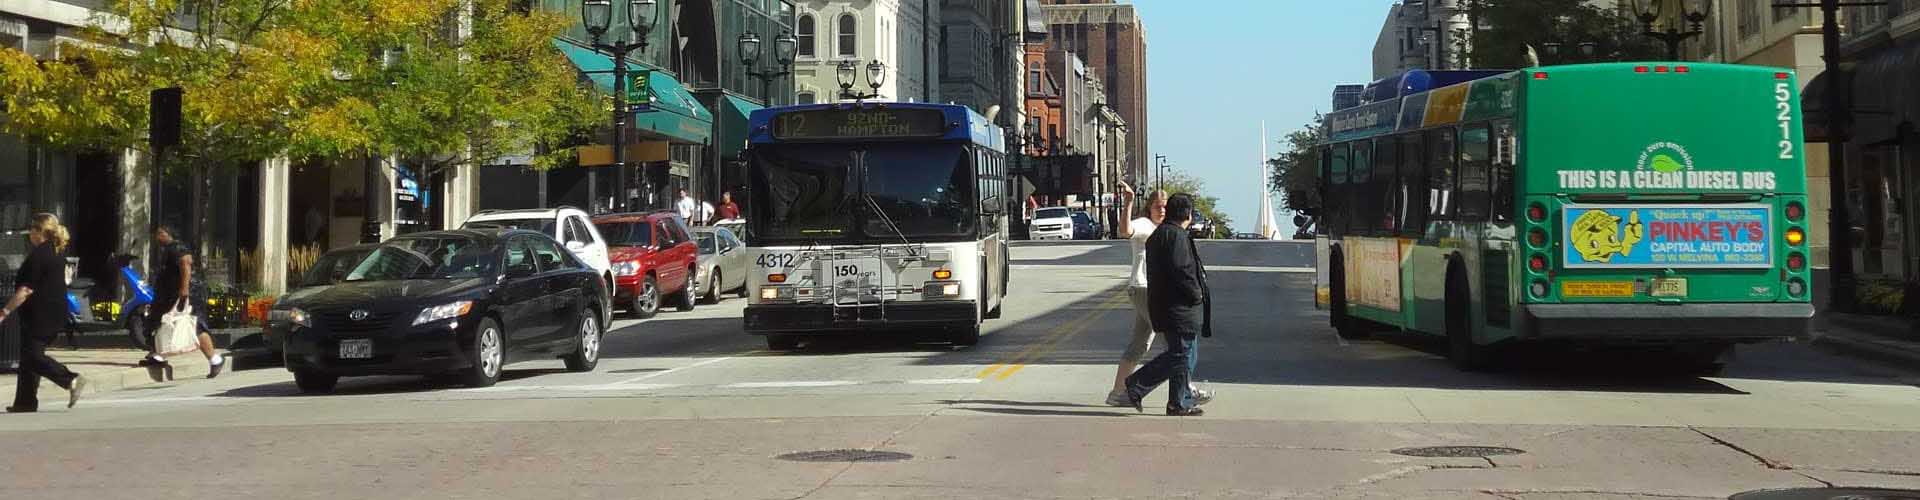 Urban intersection showing buses and pedestrians in Wisconsin